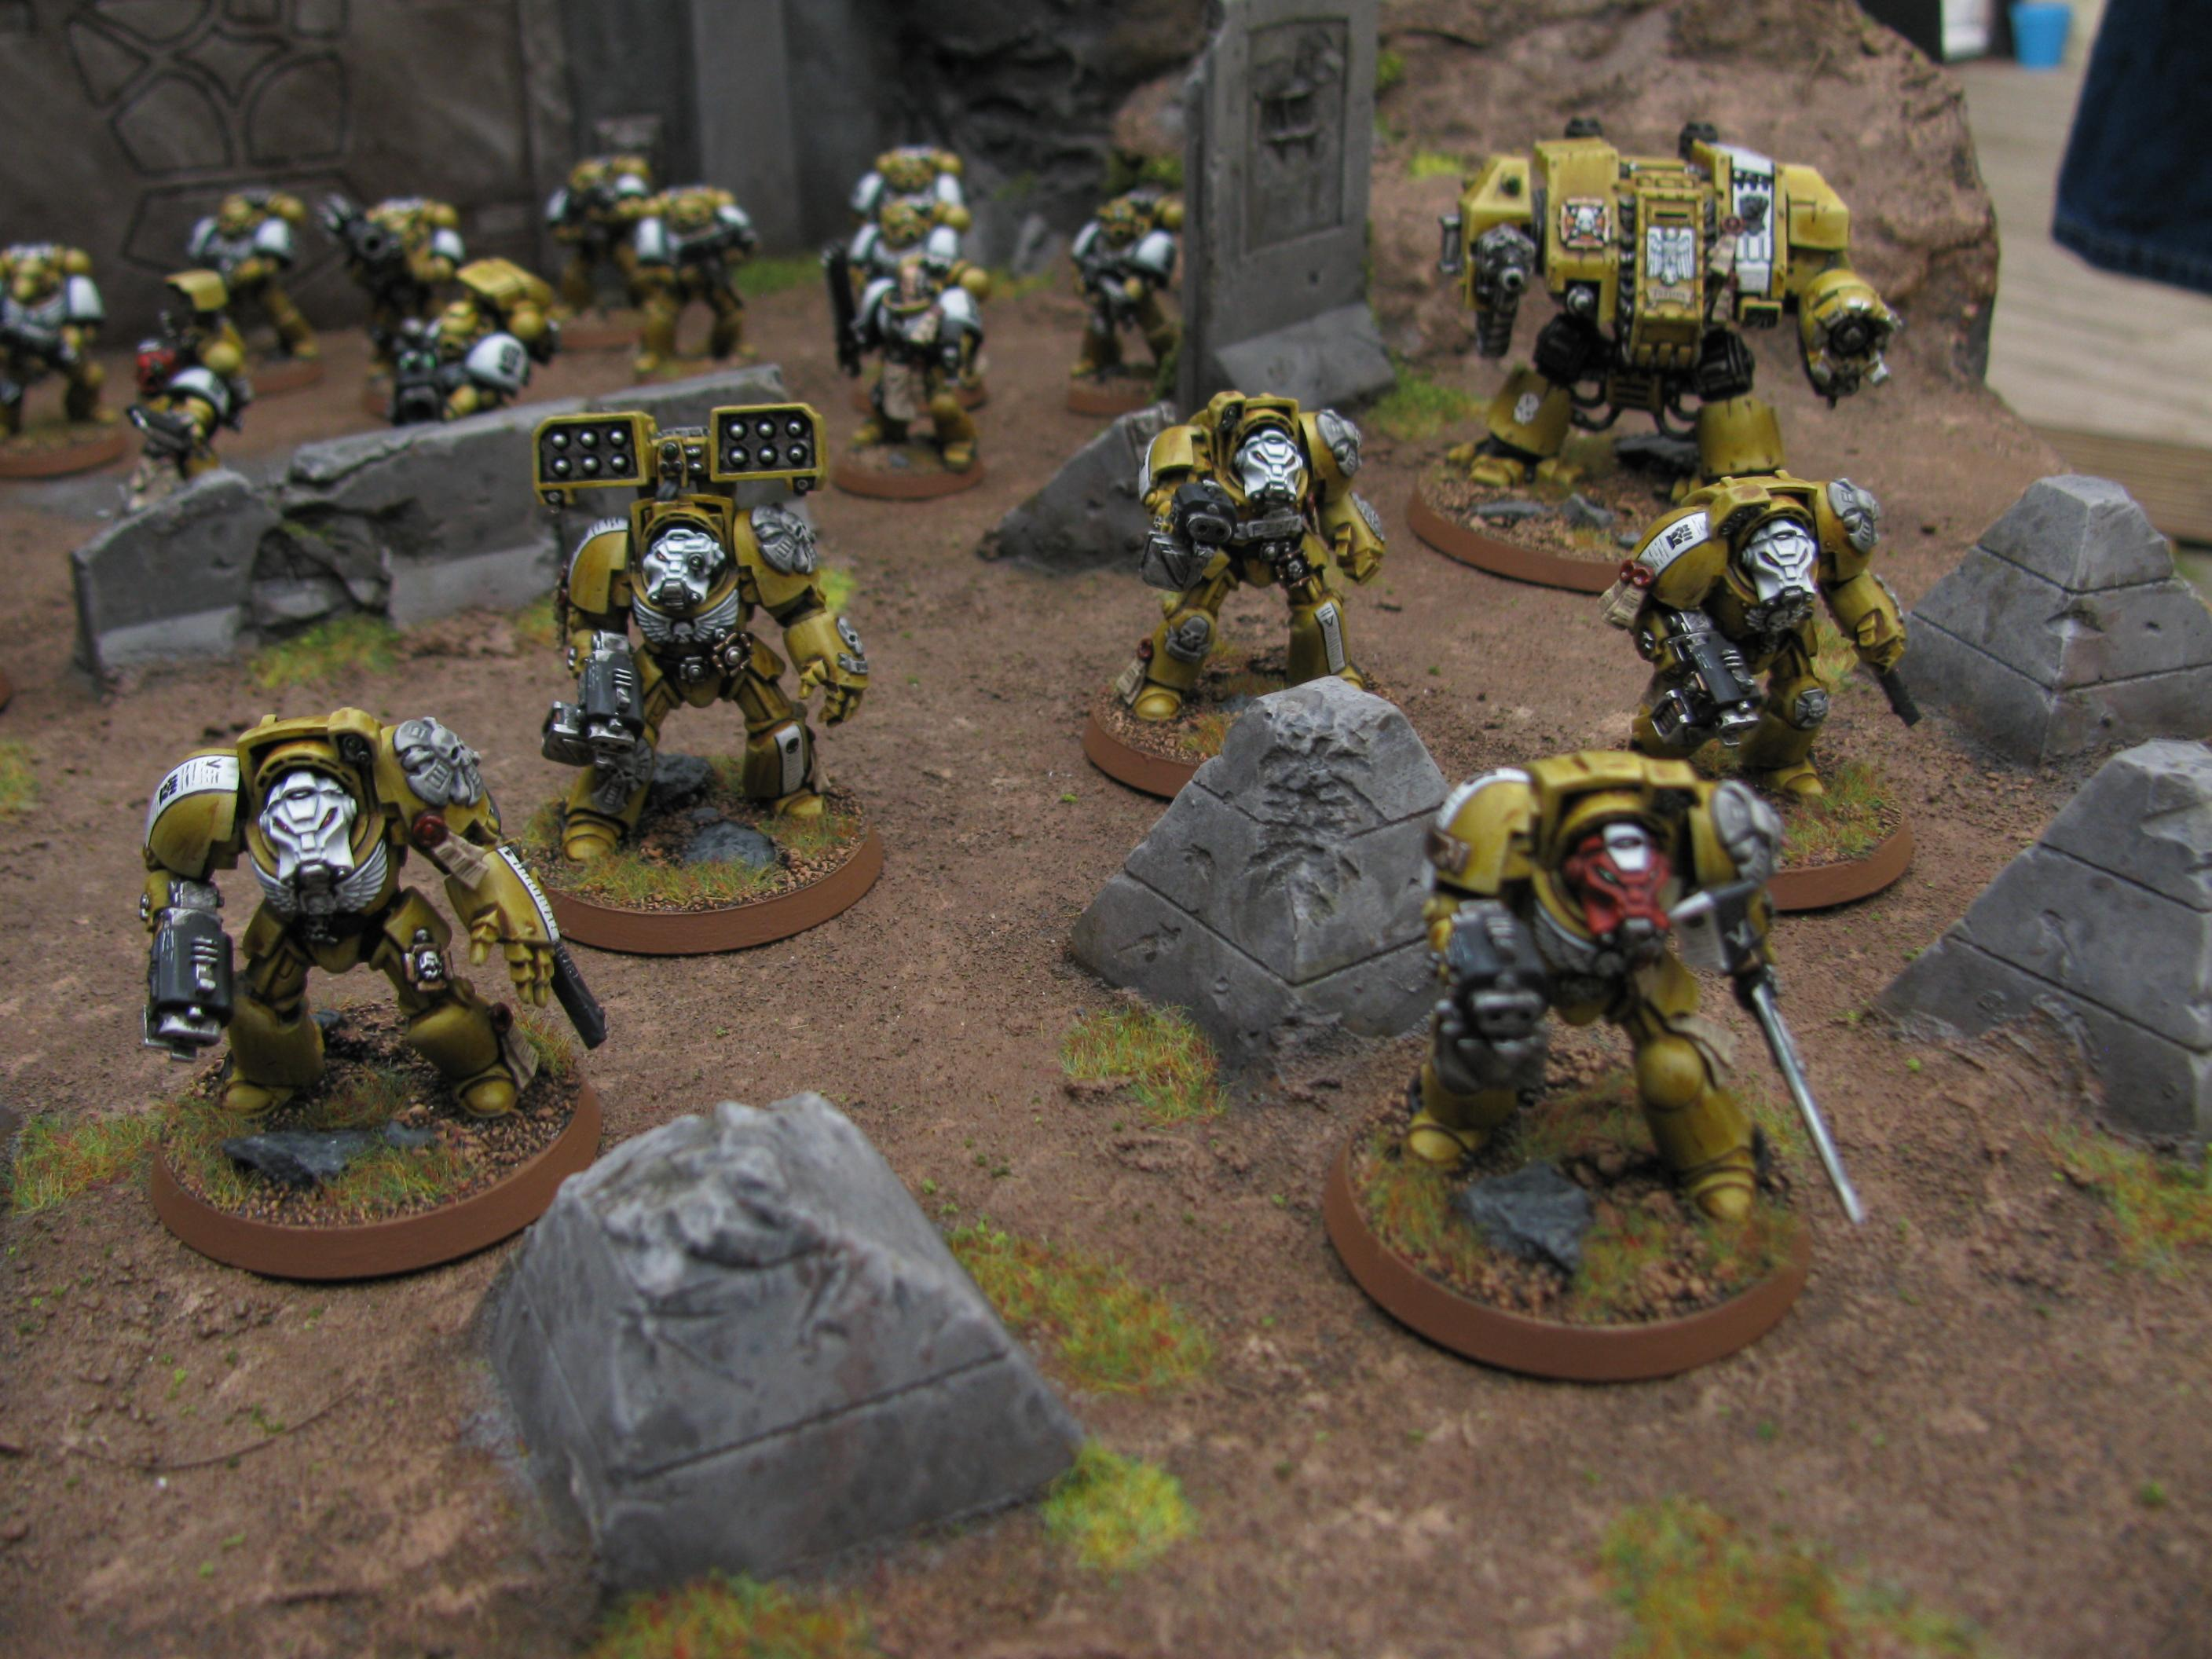 Armies On Parade, Imperial Fists, Space Marines